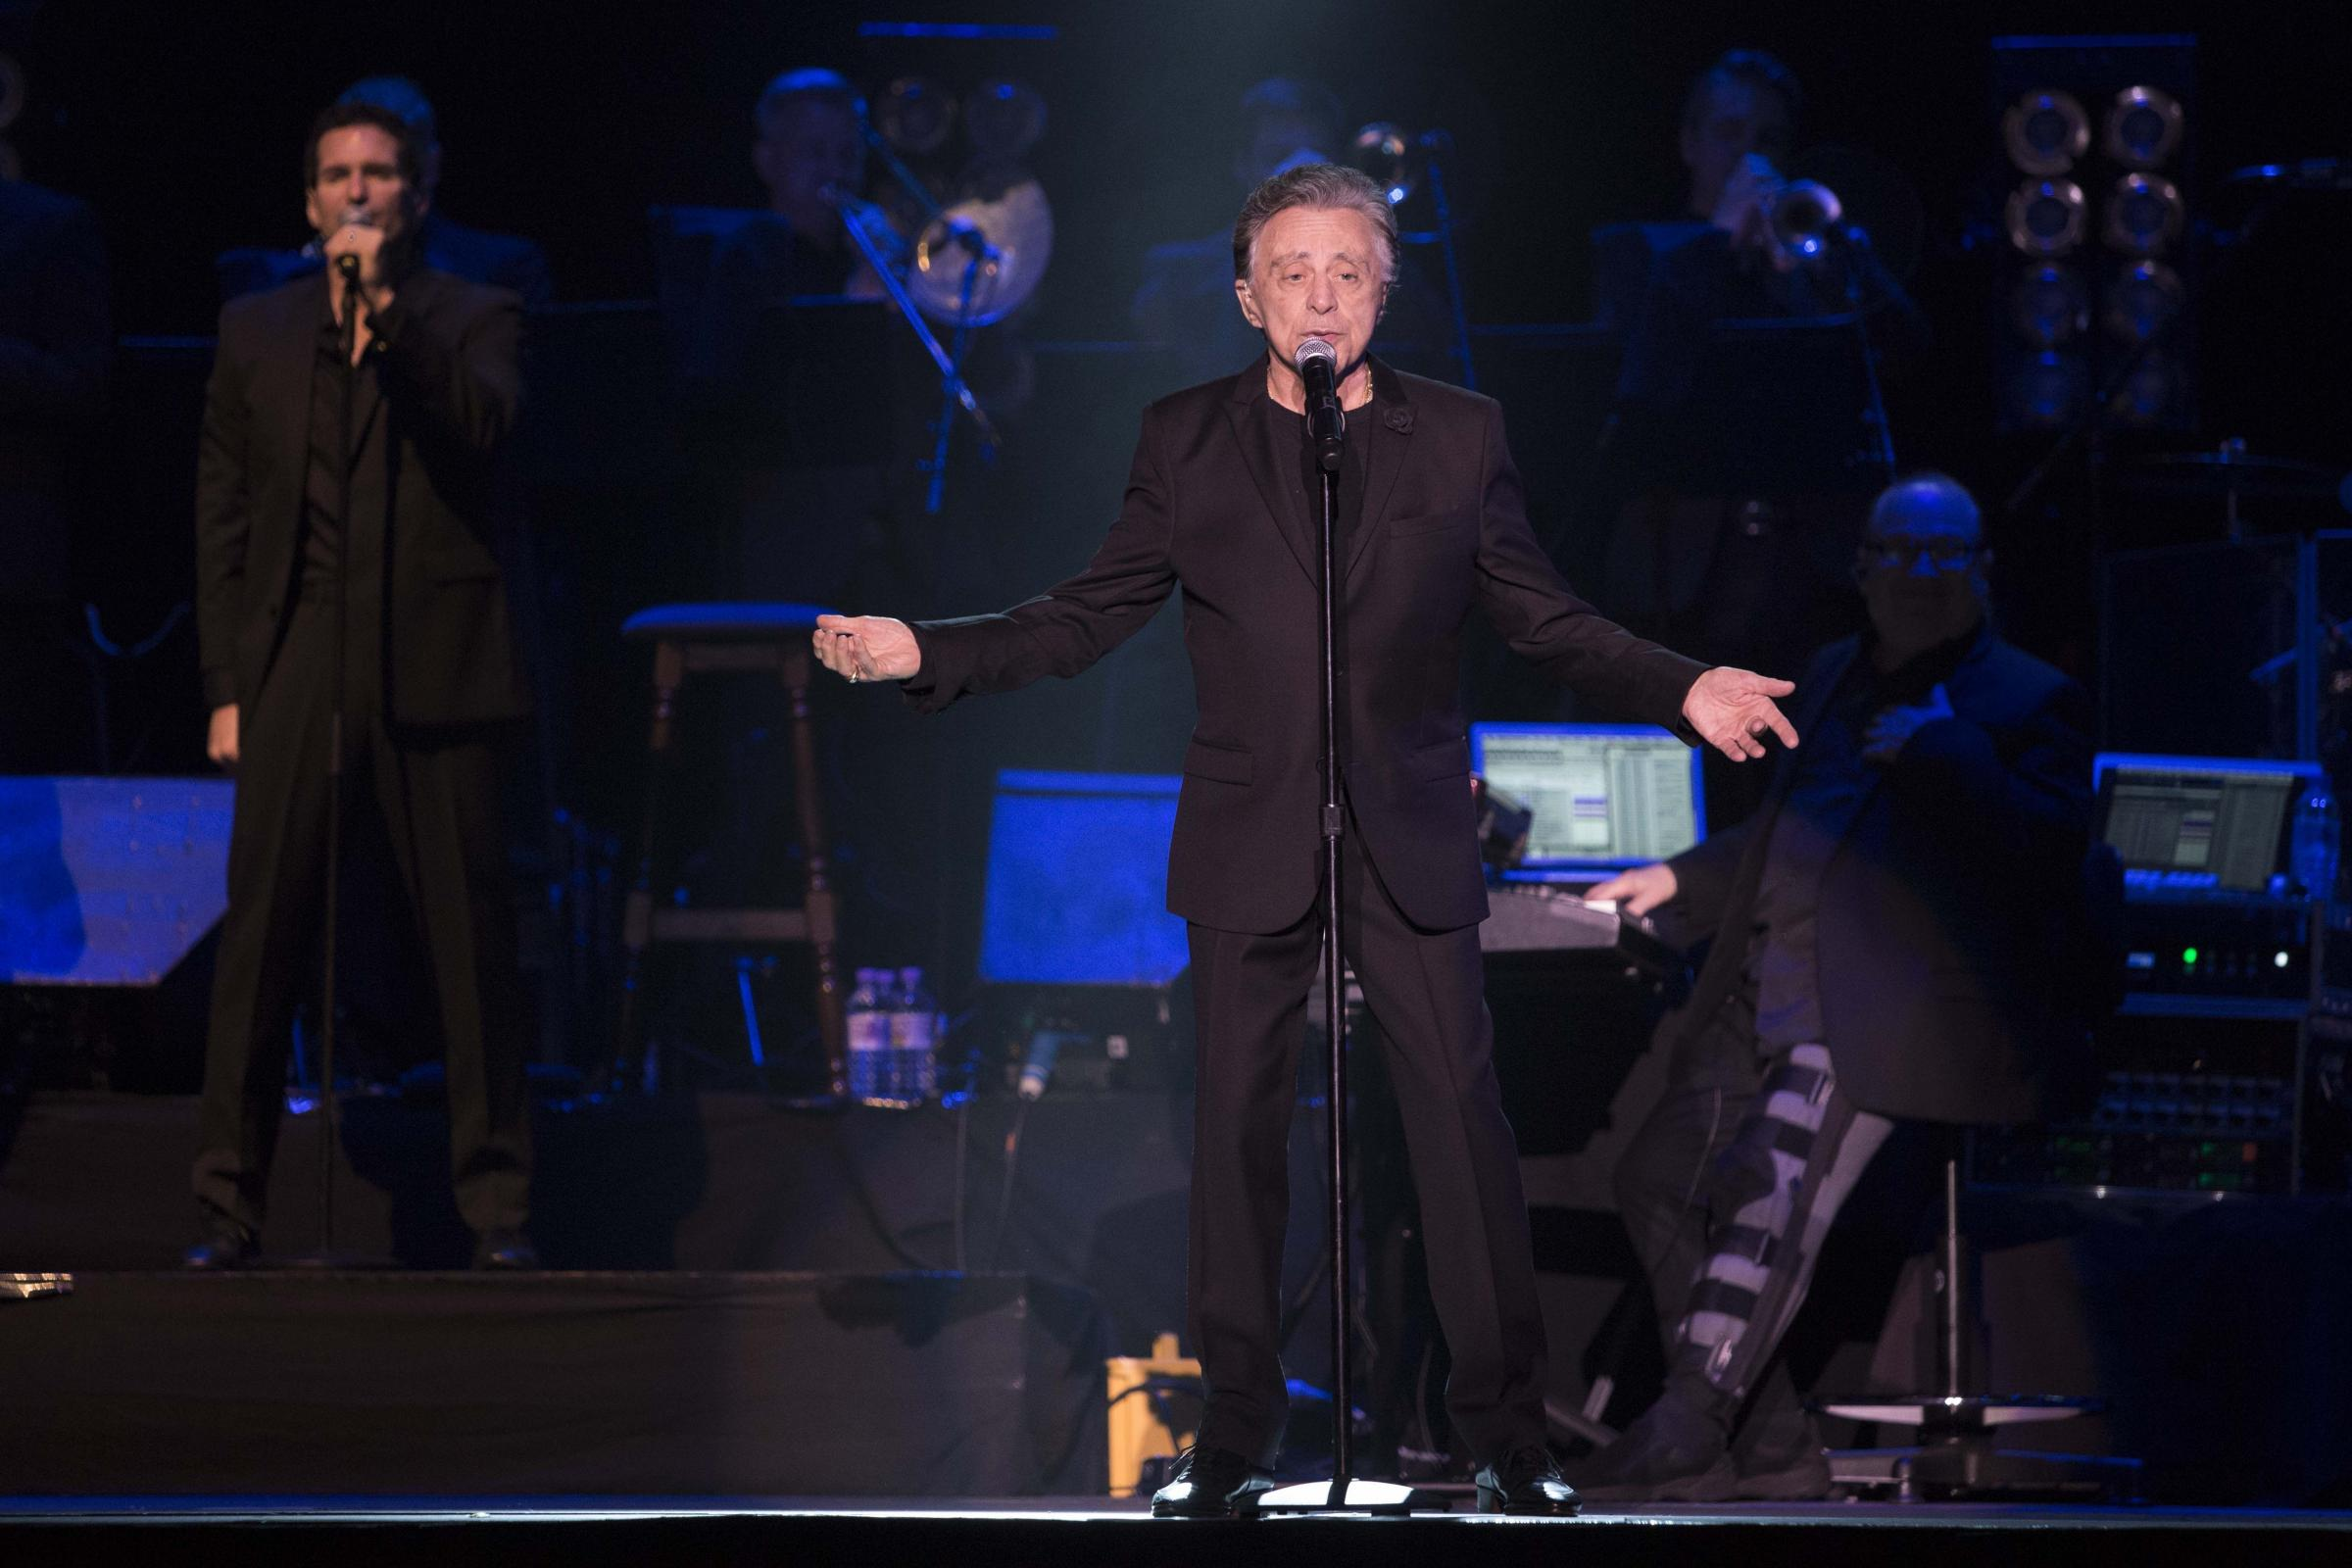 Frankie Valli plays the BIC. Picture: rockstarimages.co.uk.